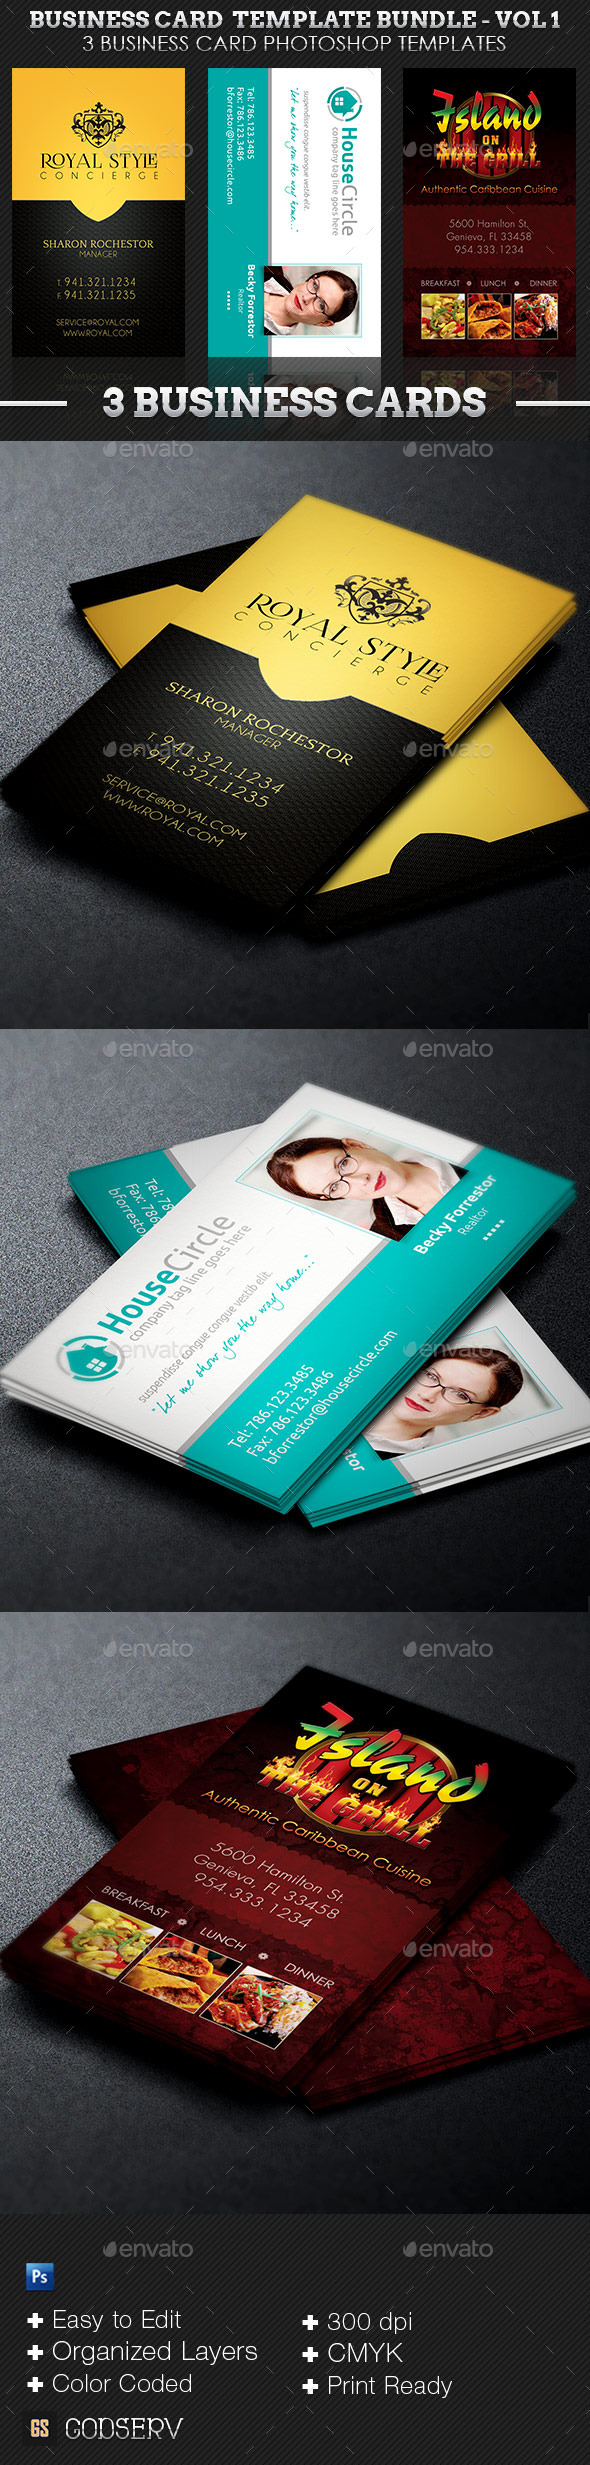 Business Card Template Bundle Volume 1